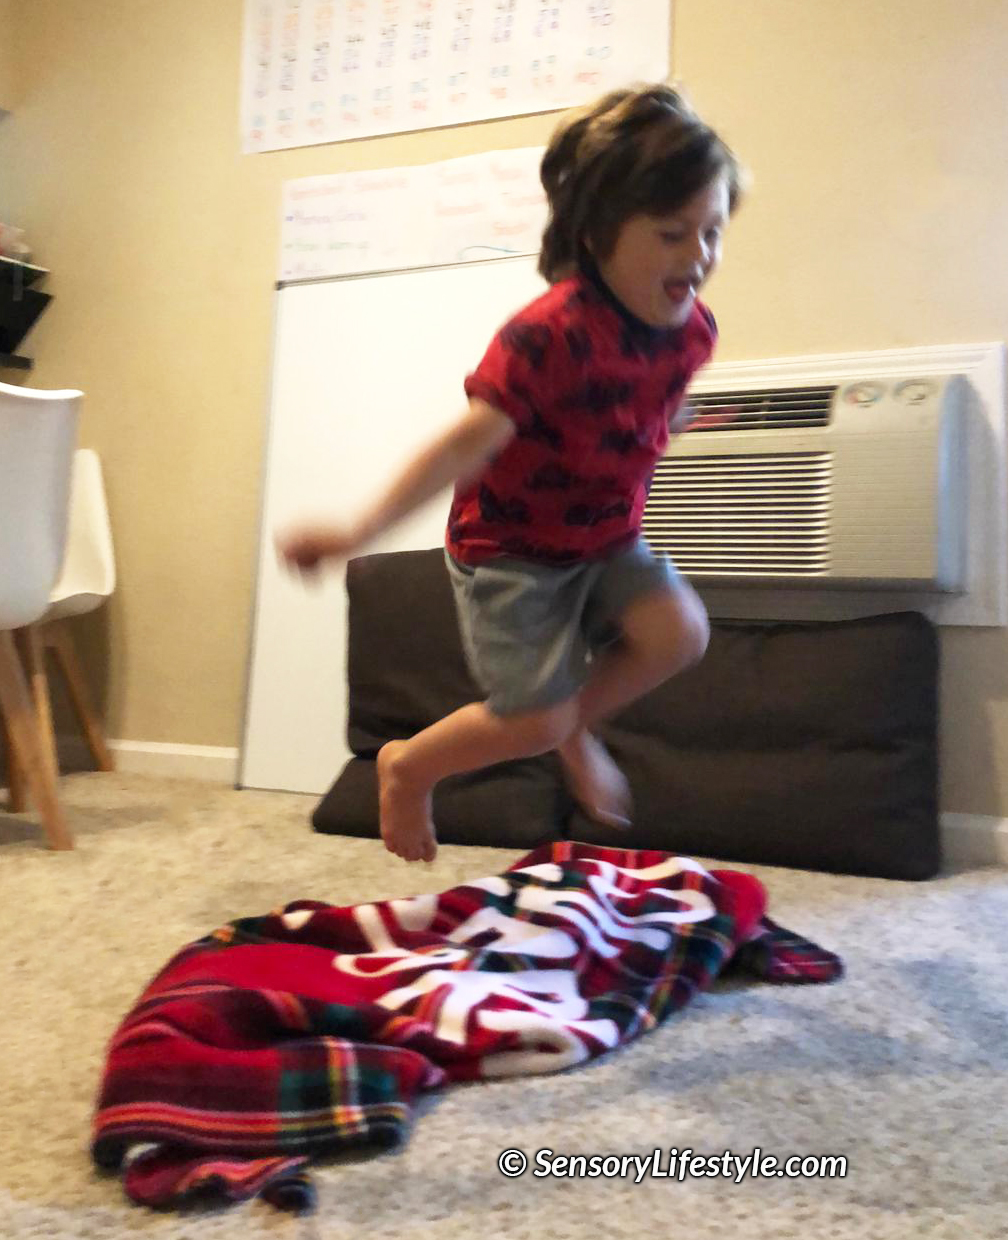 Activities for kids at home: jumping puddles